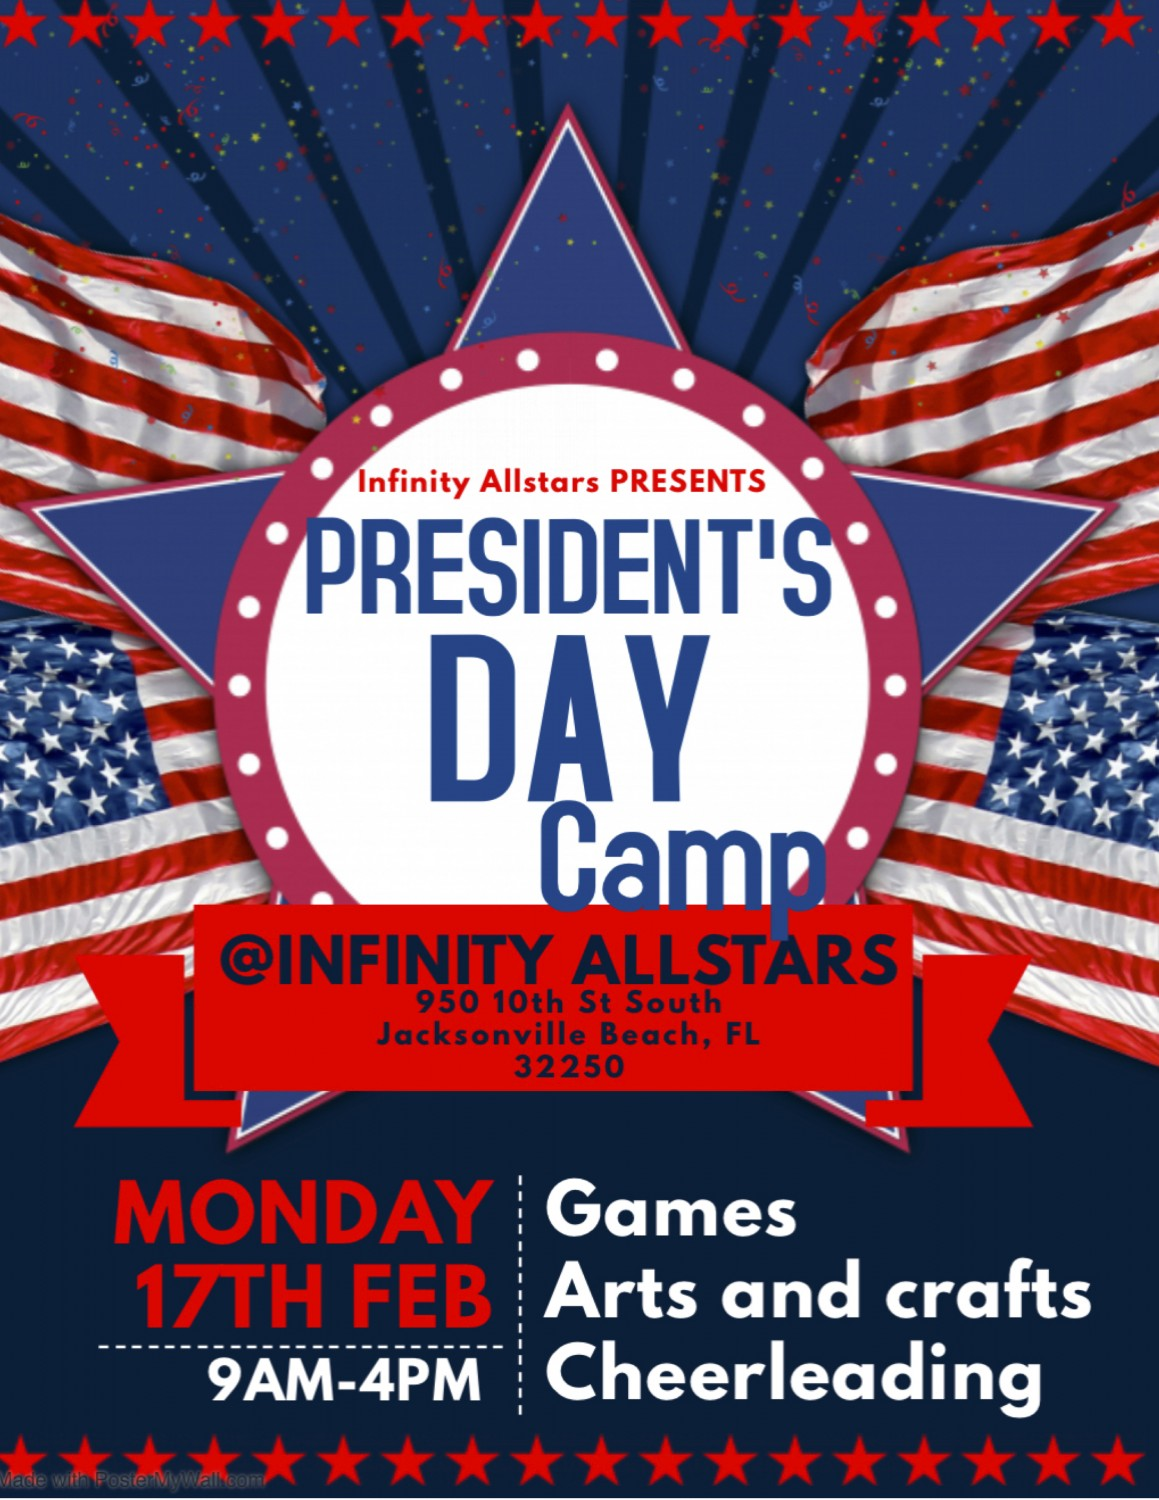 Presidents_Day_Camp